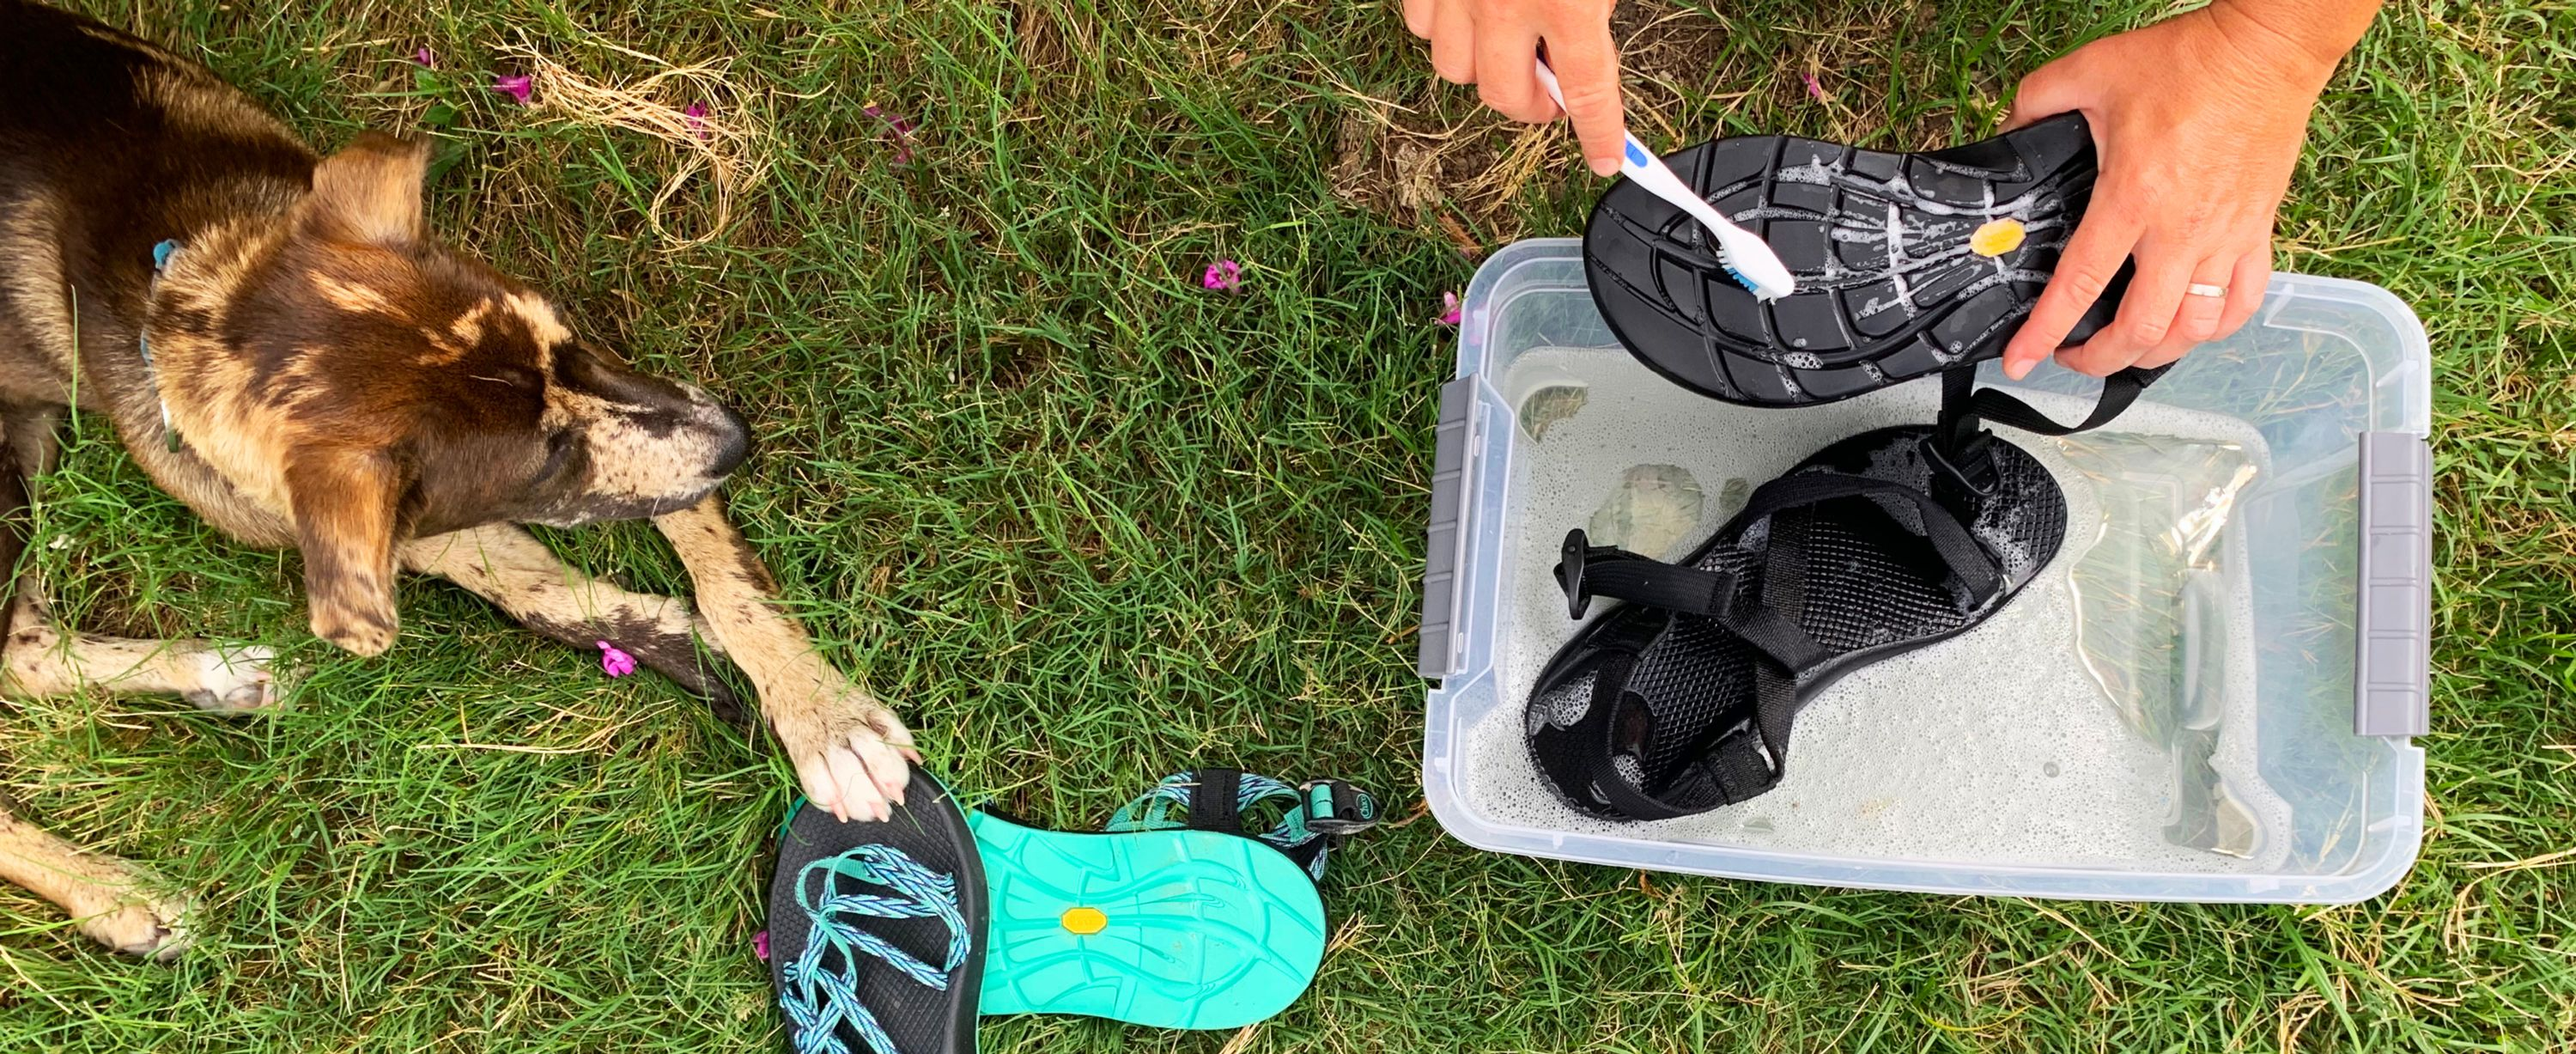 Cleaning your chacos